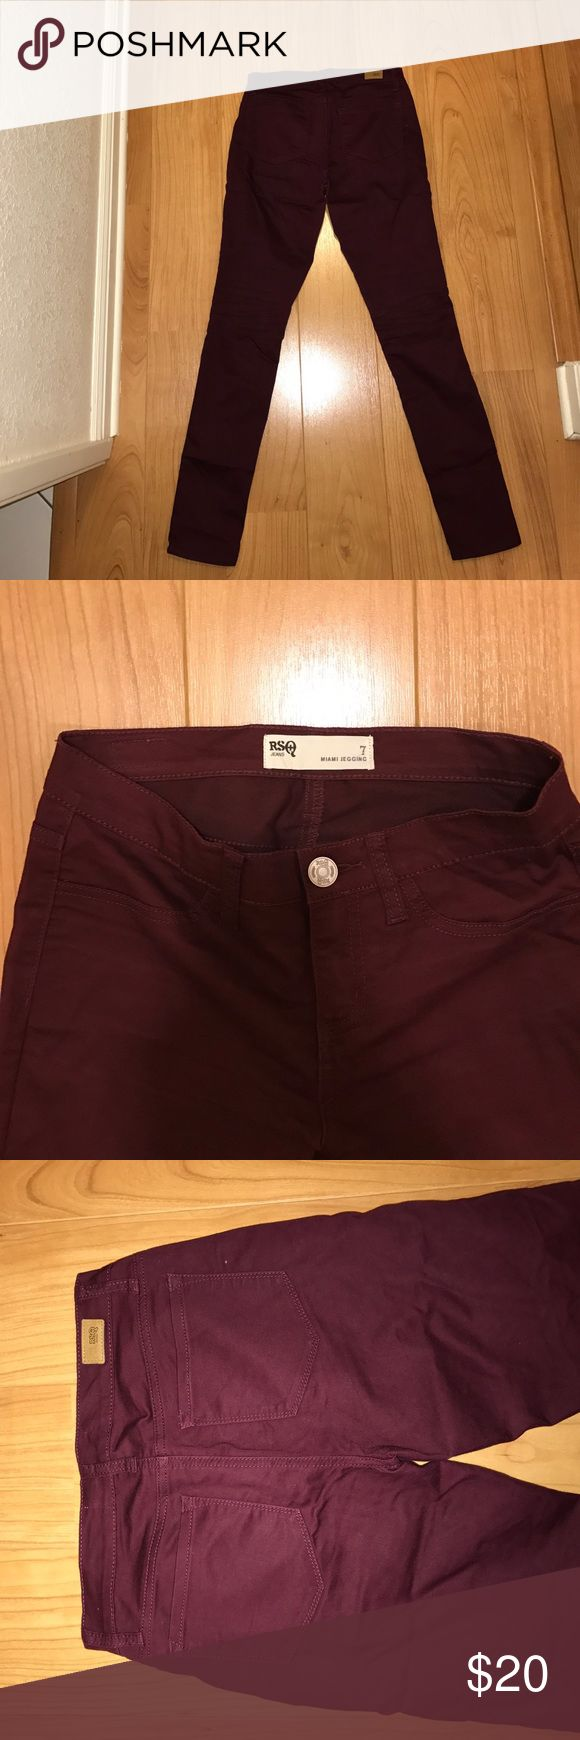 Burgundy RSQ jeggings RSQ Miami Women's Jeggings, great condition. Never worn only tried on once. RSQ Jeans Skinny